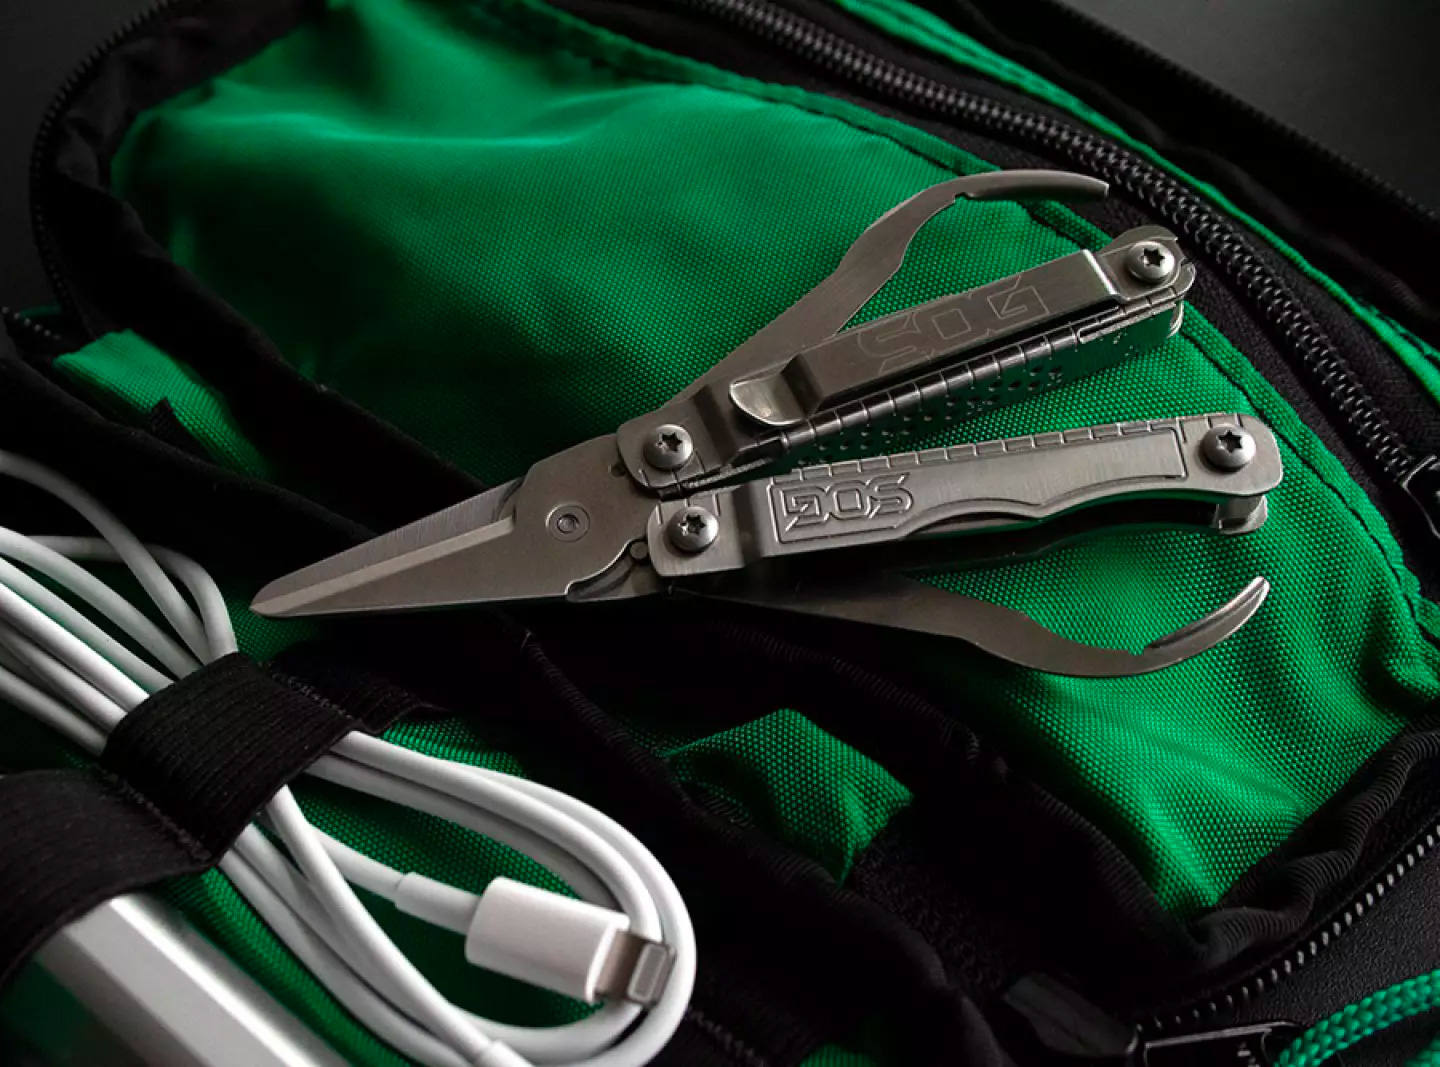 SOG's Snippet Multi-Tool Makes The Cut at werd.com